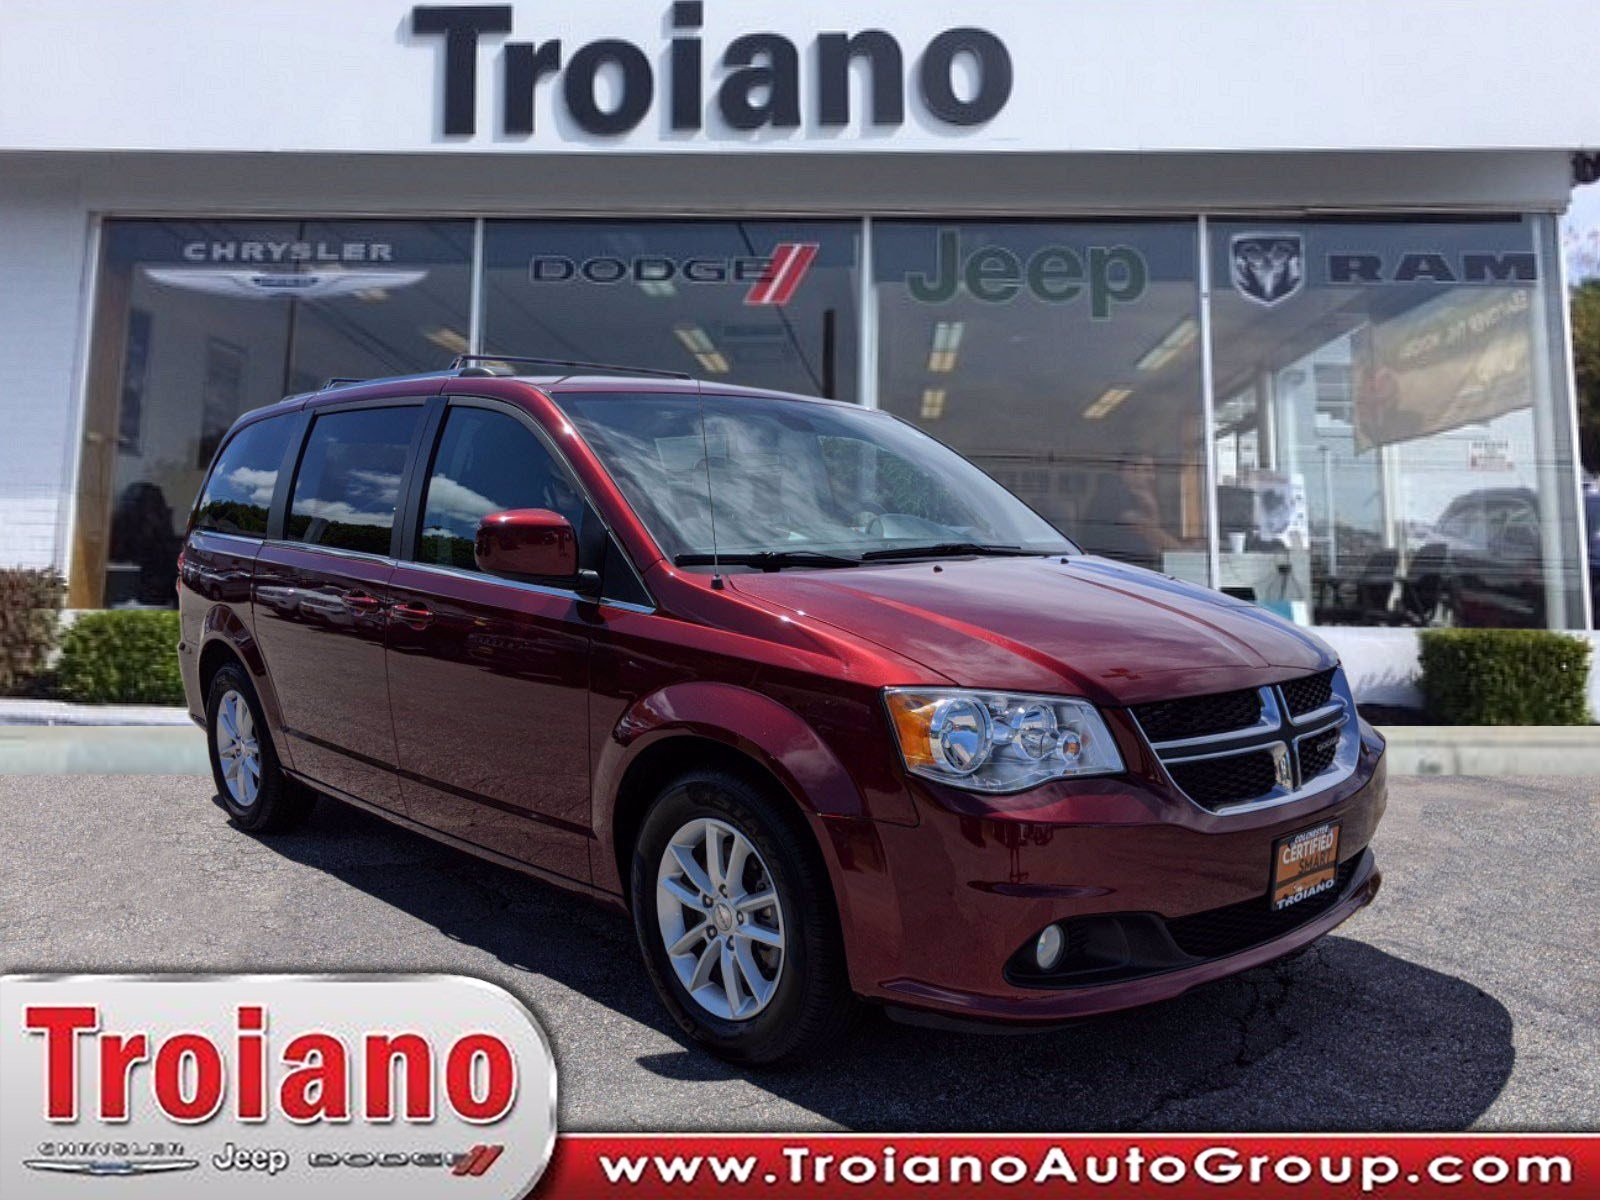 Certified Pre Owned 2019 Dodge Grand Caravan Sxt Mini Van Passenger In Colchester Ct1917 Troiano Cdjr